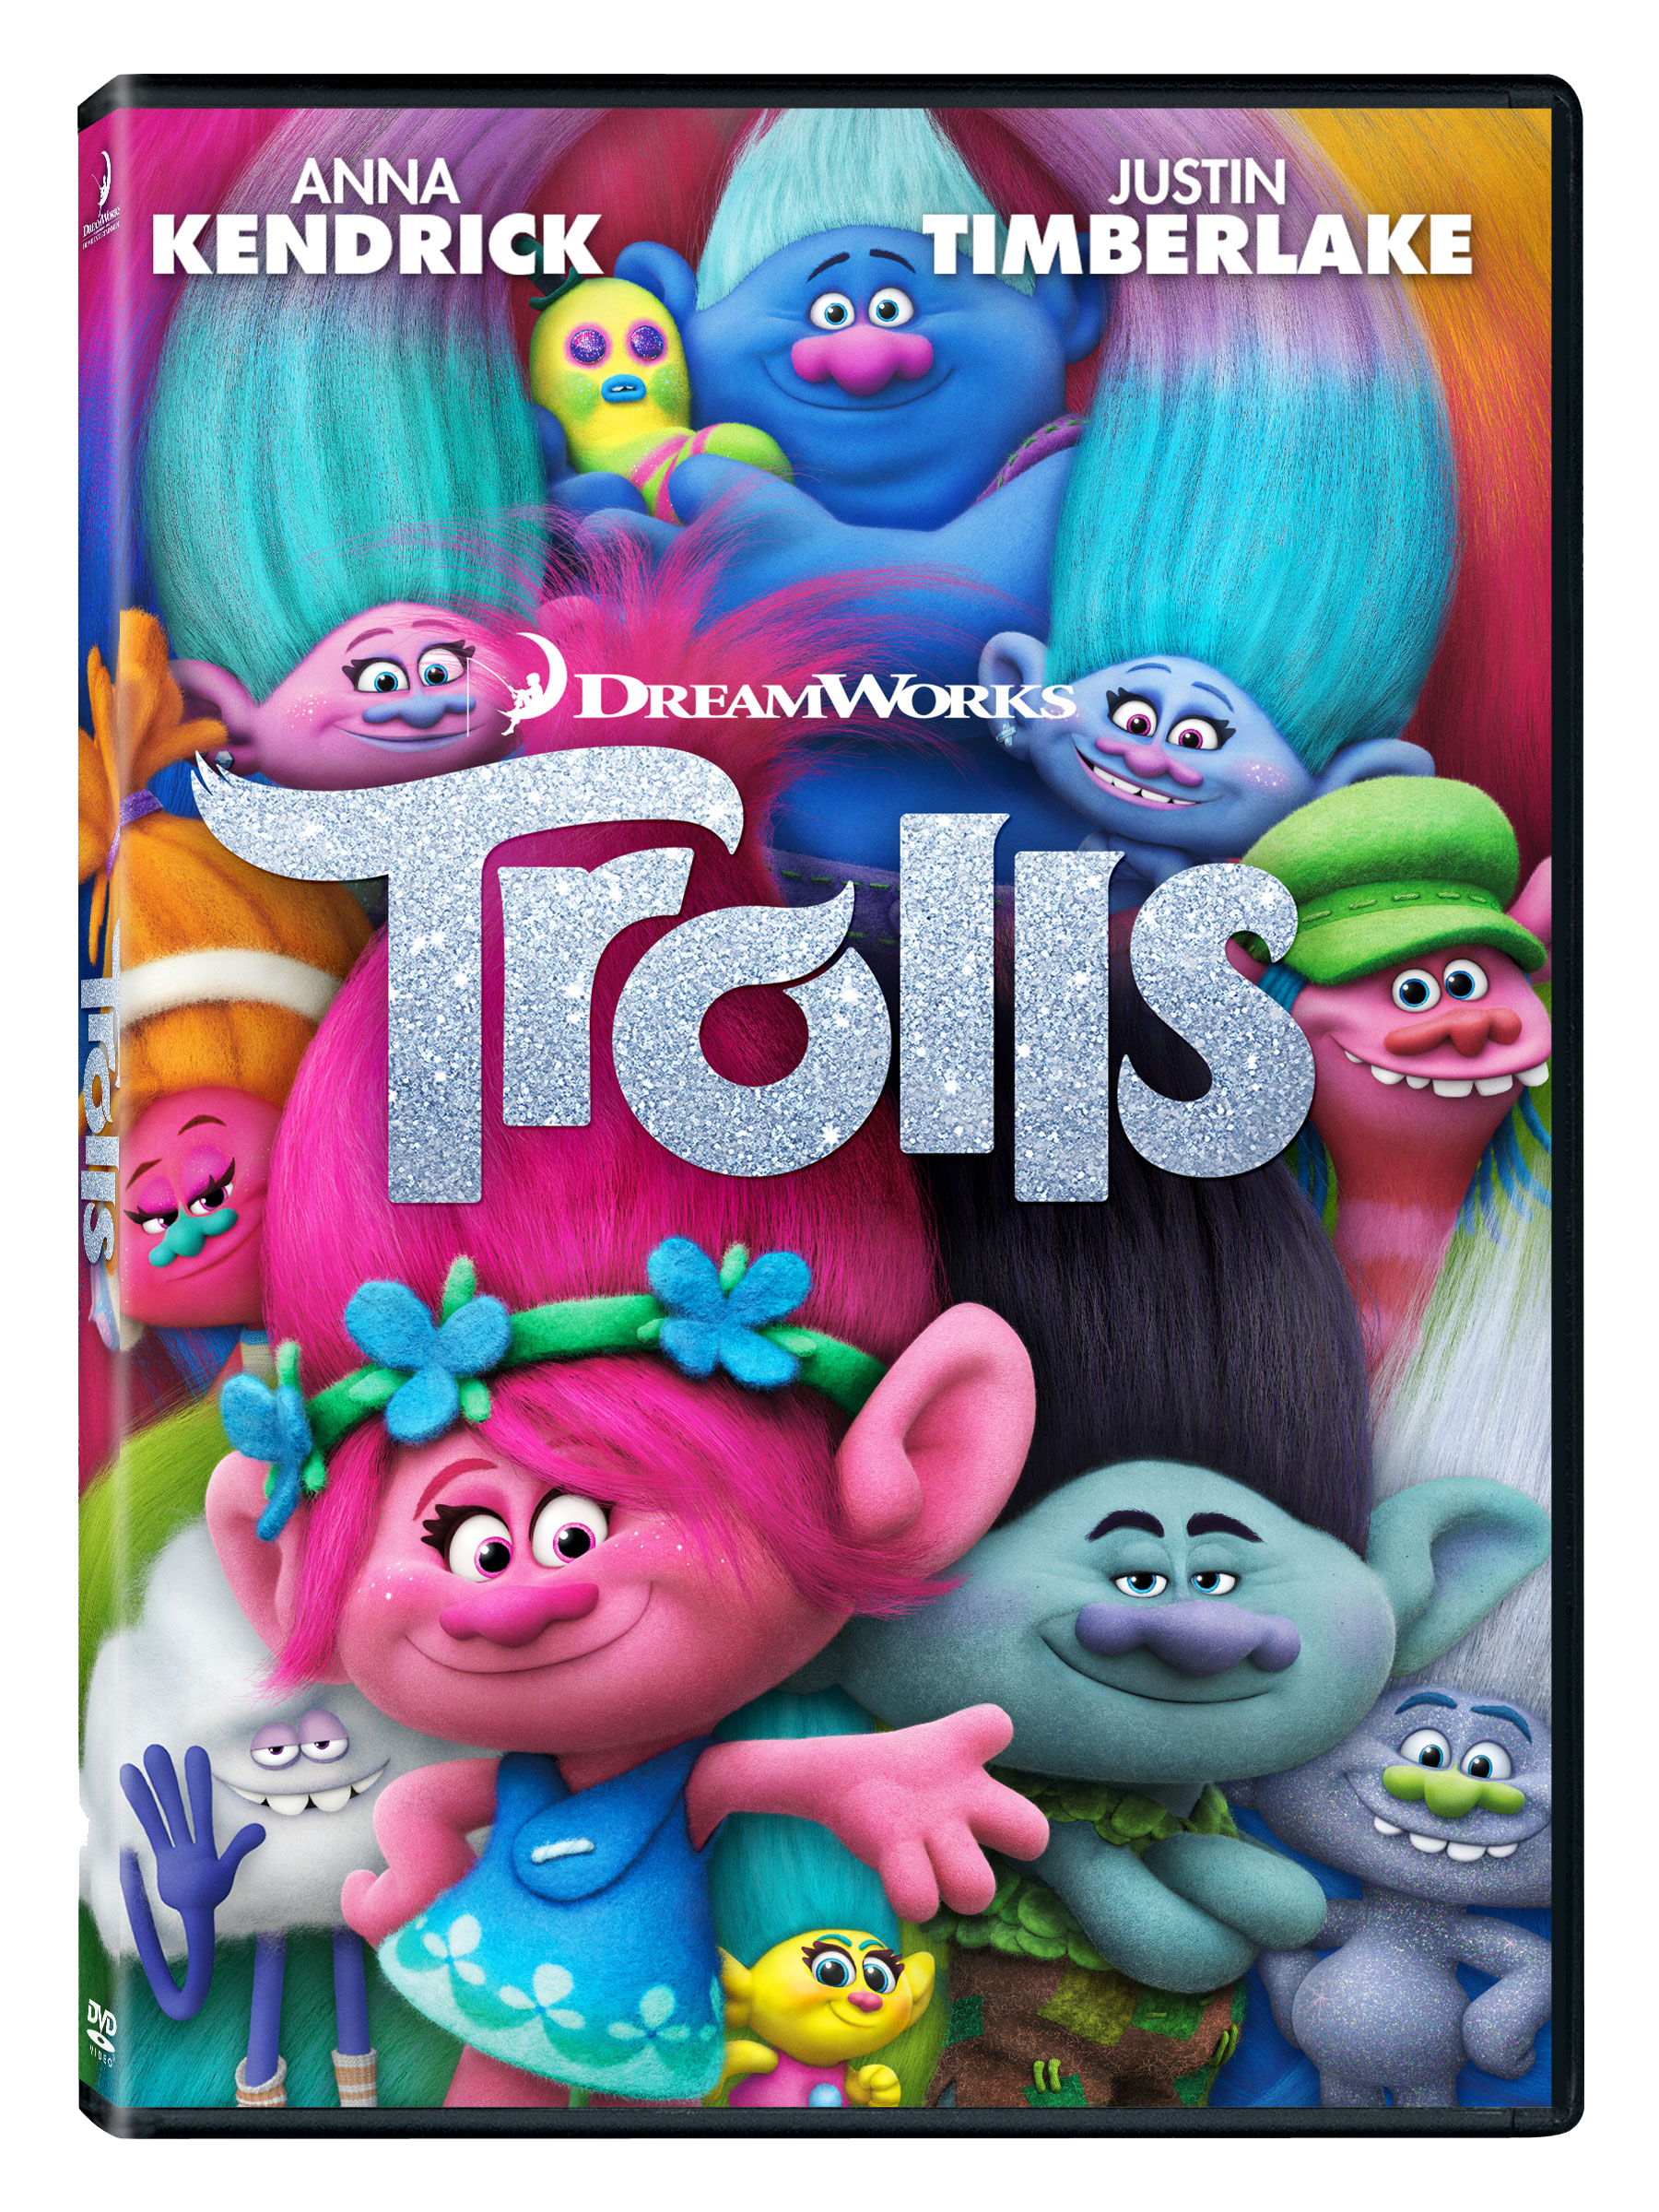 trolls_dvd_spine